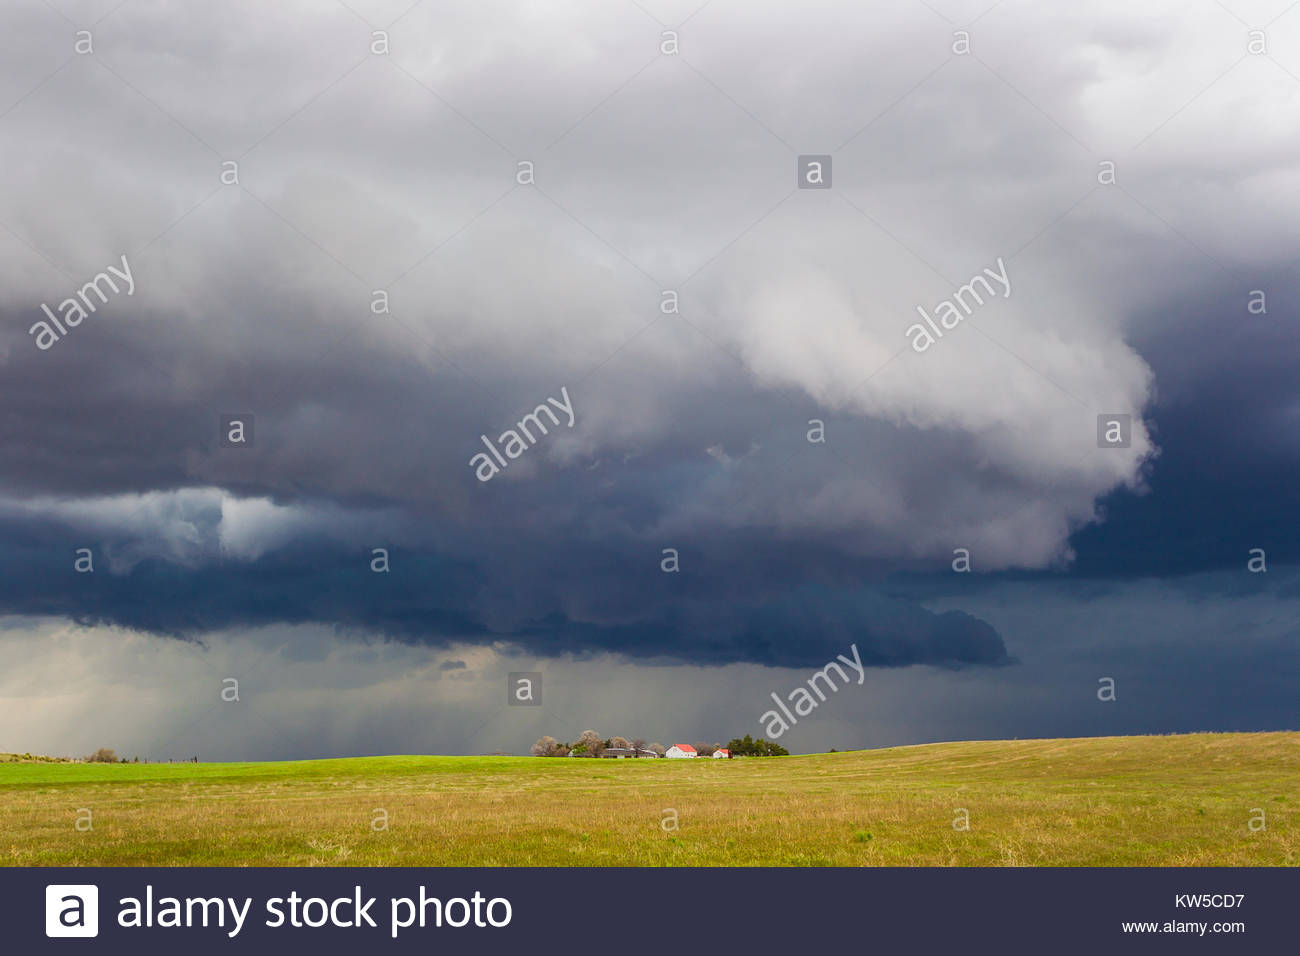 A supercell thunderstorm developing over a farm house in Nebraska. - Stock Image